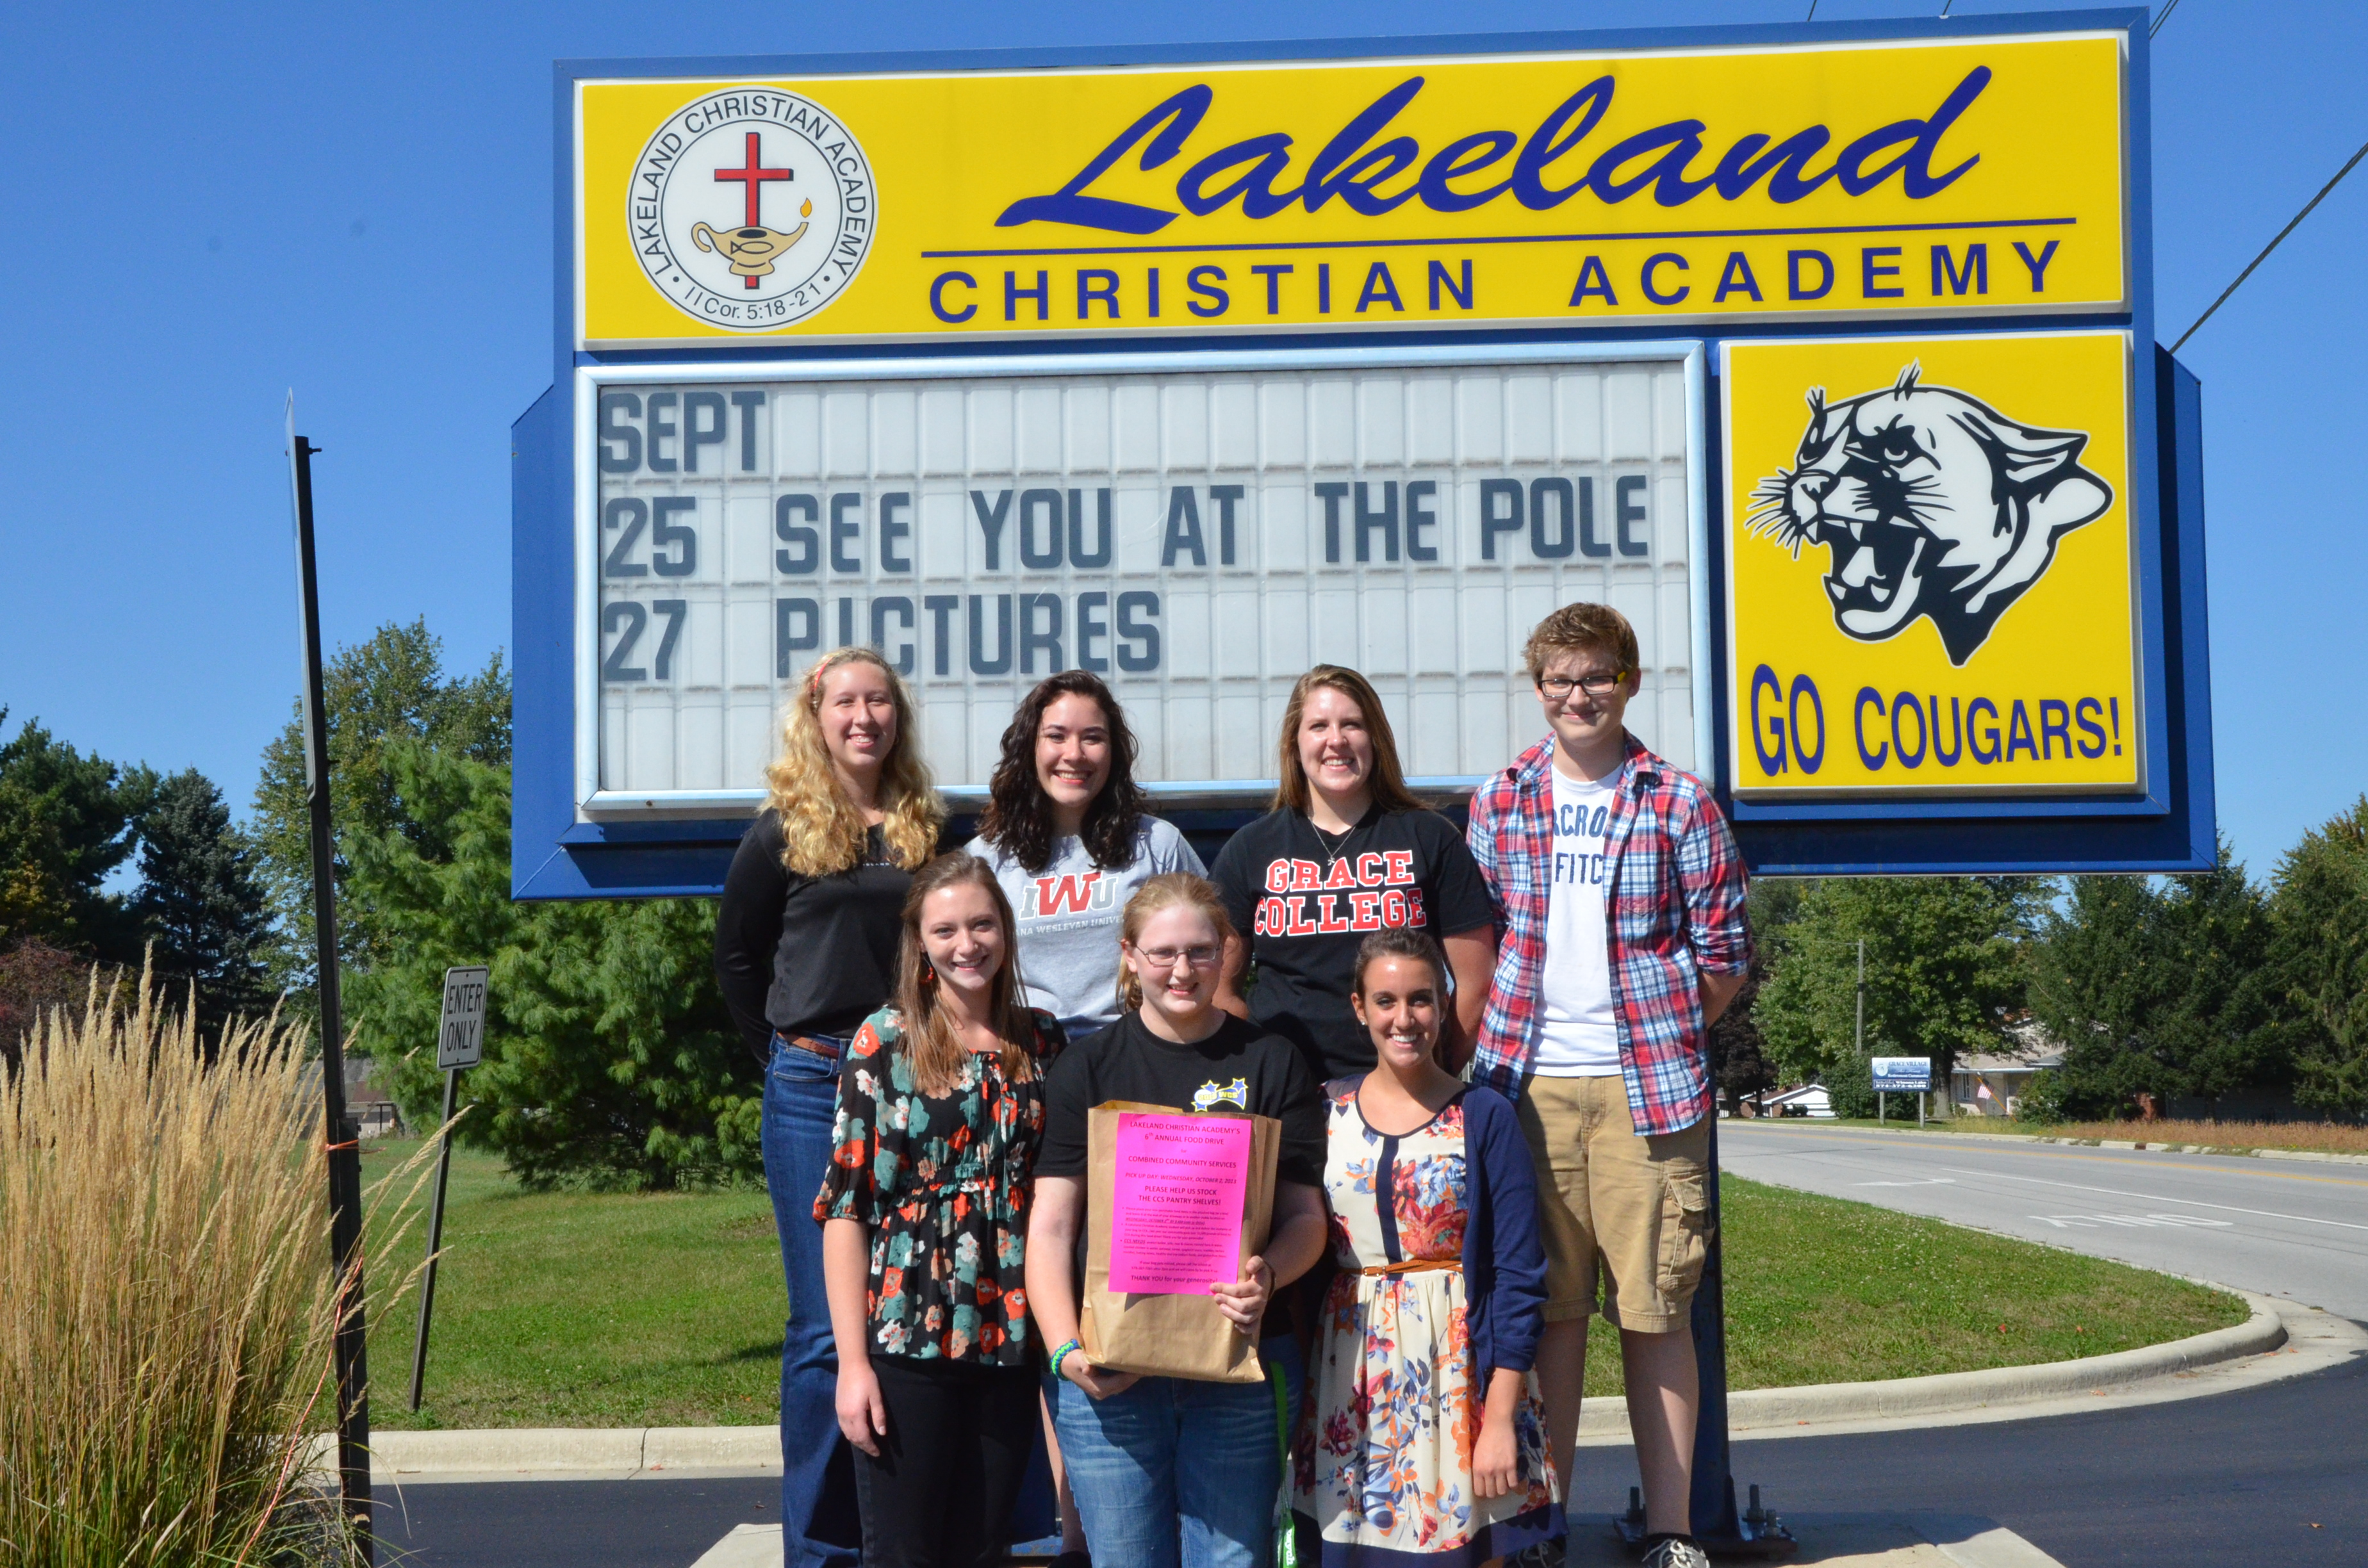 Lakeland Christian Academy   will begin gathering food for the sixth annual CCS Food Drive Monday, Sept. 30.  Photographed are student organizers (back row, from left): Elizabeth Brehnay, Victoria Flores, Julianne Haines, Cameron Estep.  Front row: Landyn Brune, Sarah Gross, Abbey Hartwiger.  Not photographed: Nathan Gross.